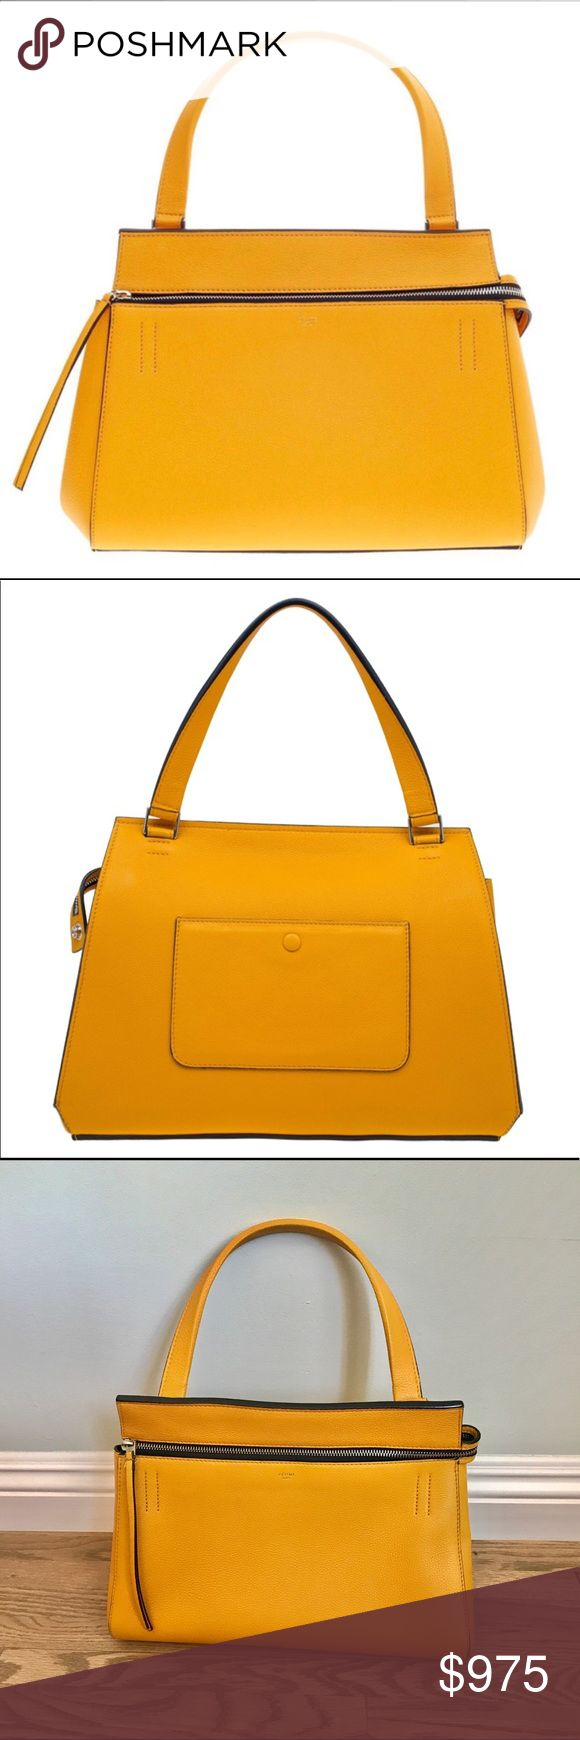 Celine Small Edge Bag, Saffron Drummed calfskin leather Céline Small Edge bag with silver-tone hardware, single flat shoulder strap, foil-stamped logo accent at front face, back exterior snap pocket, black lambskin leather lining, three pockets at interior walls; one featuring zip closure and zip closure at top. Protective metal feet at bottom. Includes dust bag and tags. Price firm; item not eligible for bundles.  Length: 31.5 cm Width: 15 cm Height: 25 cm Handle Drop: 16 cm Hardware…